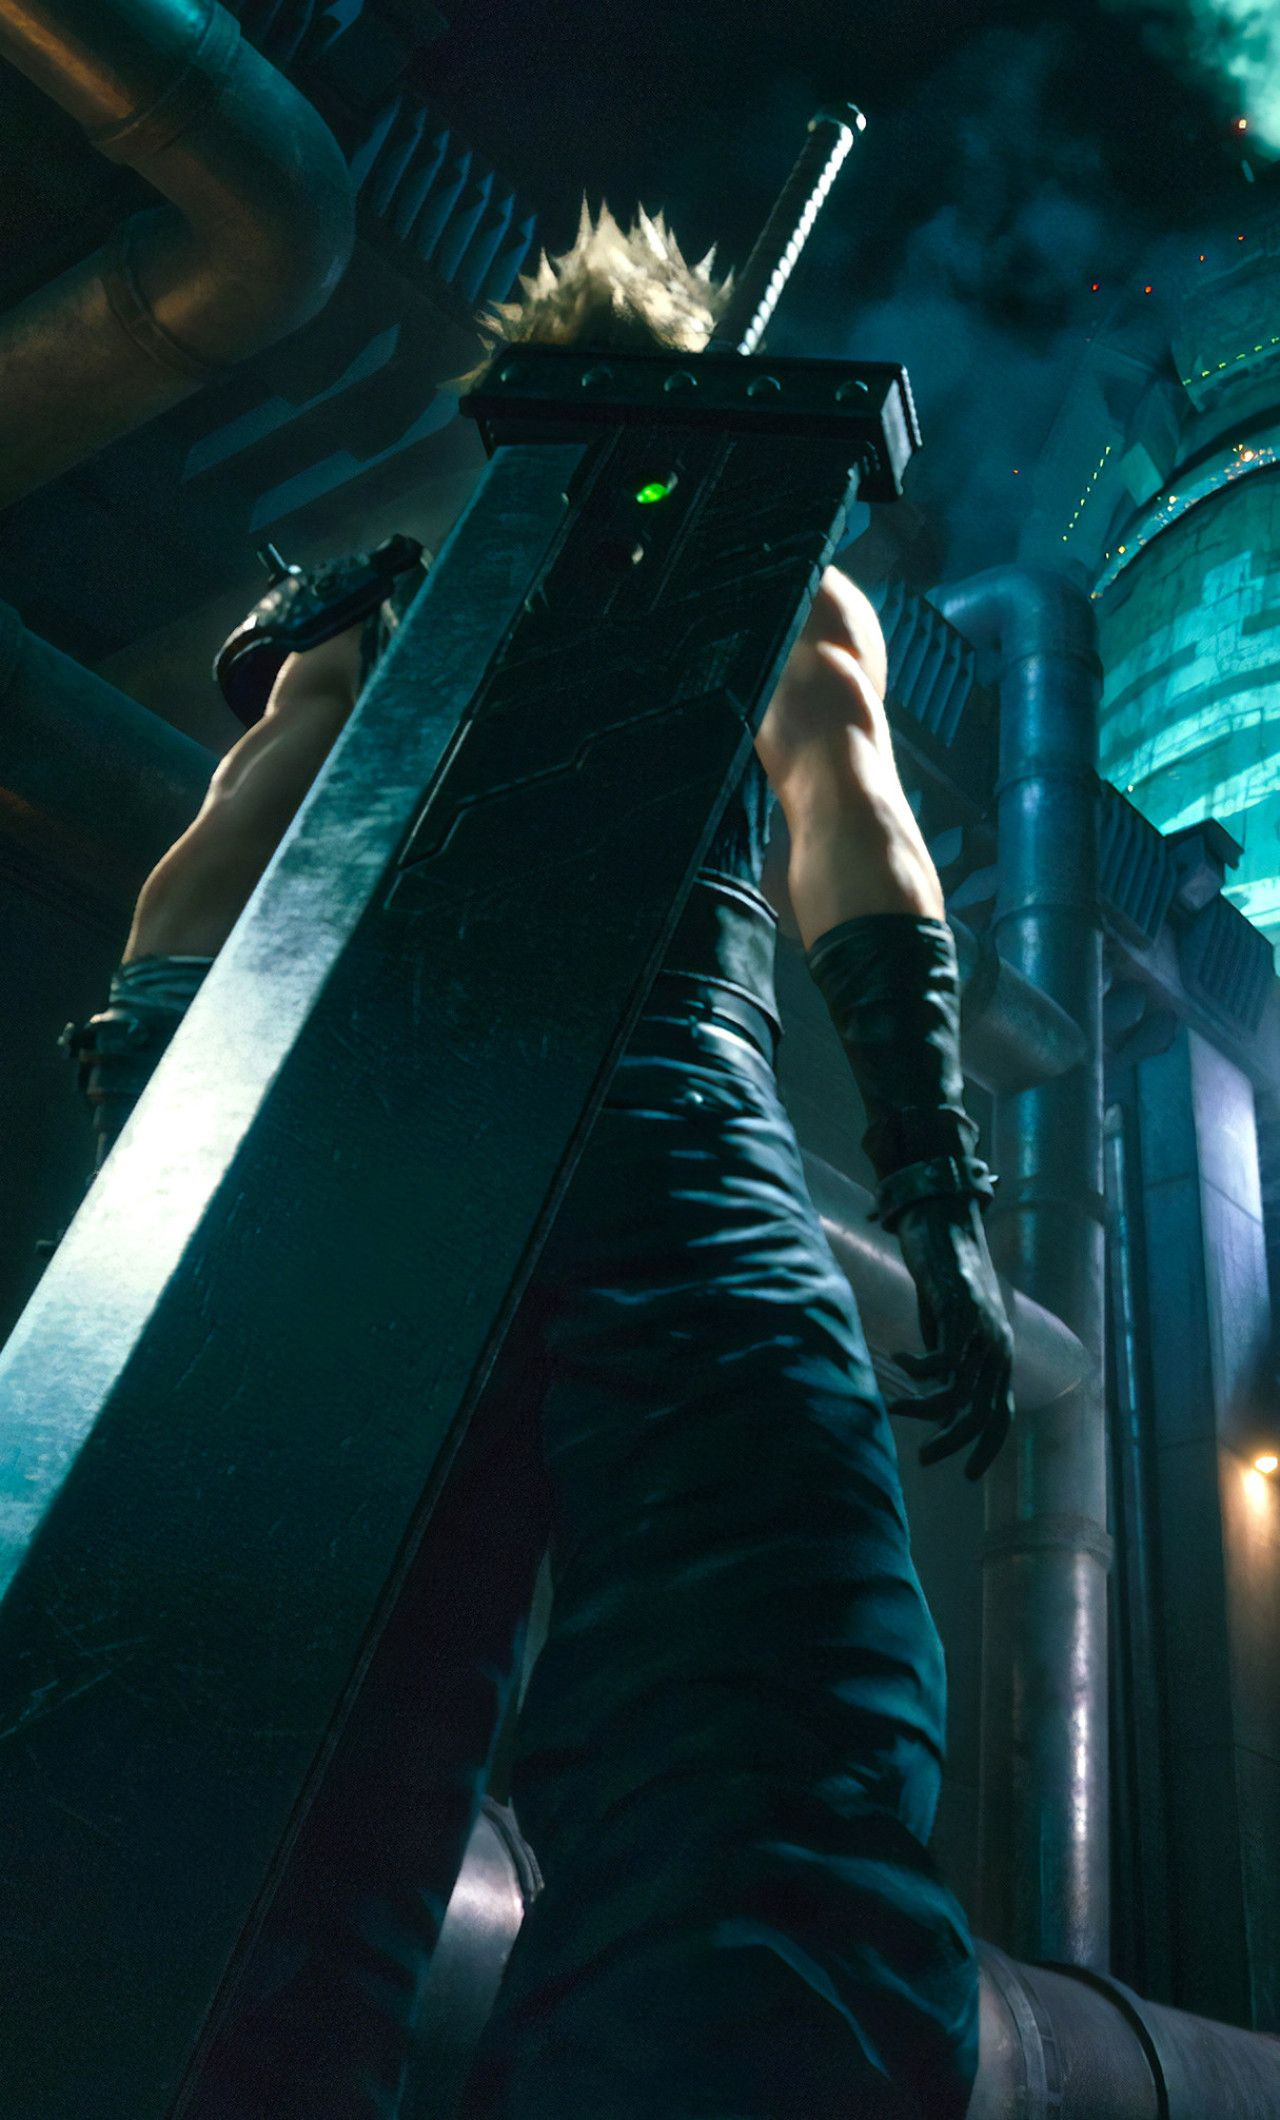 Final Fantasy Vii Iphone Wallpapers Wallpaper Cave